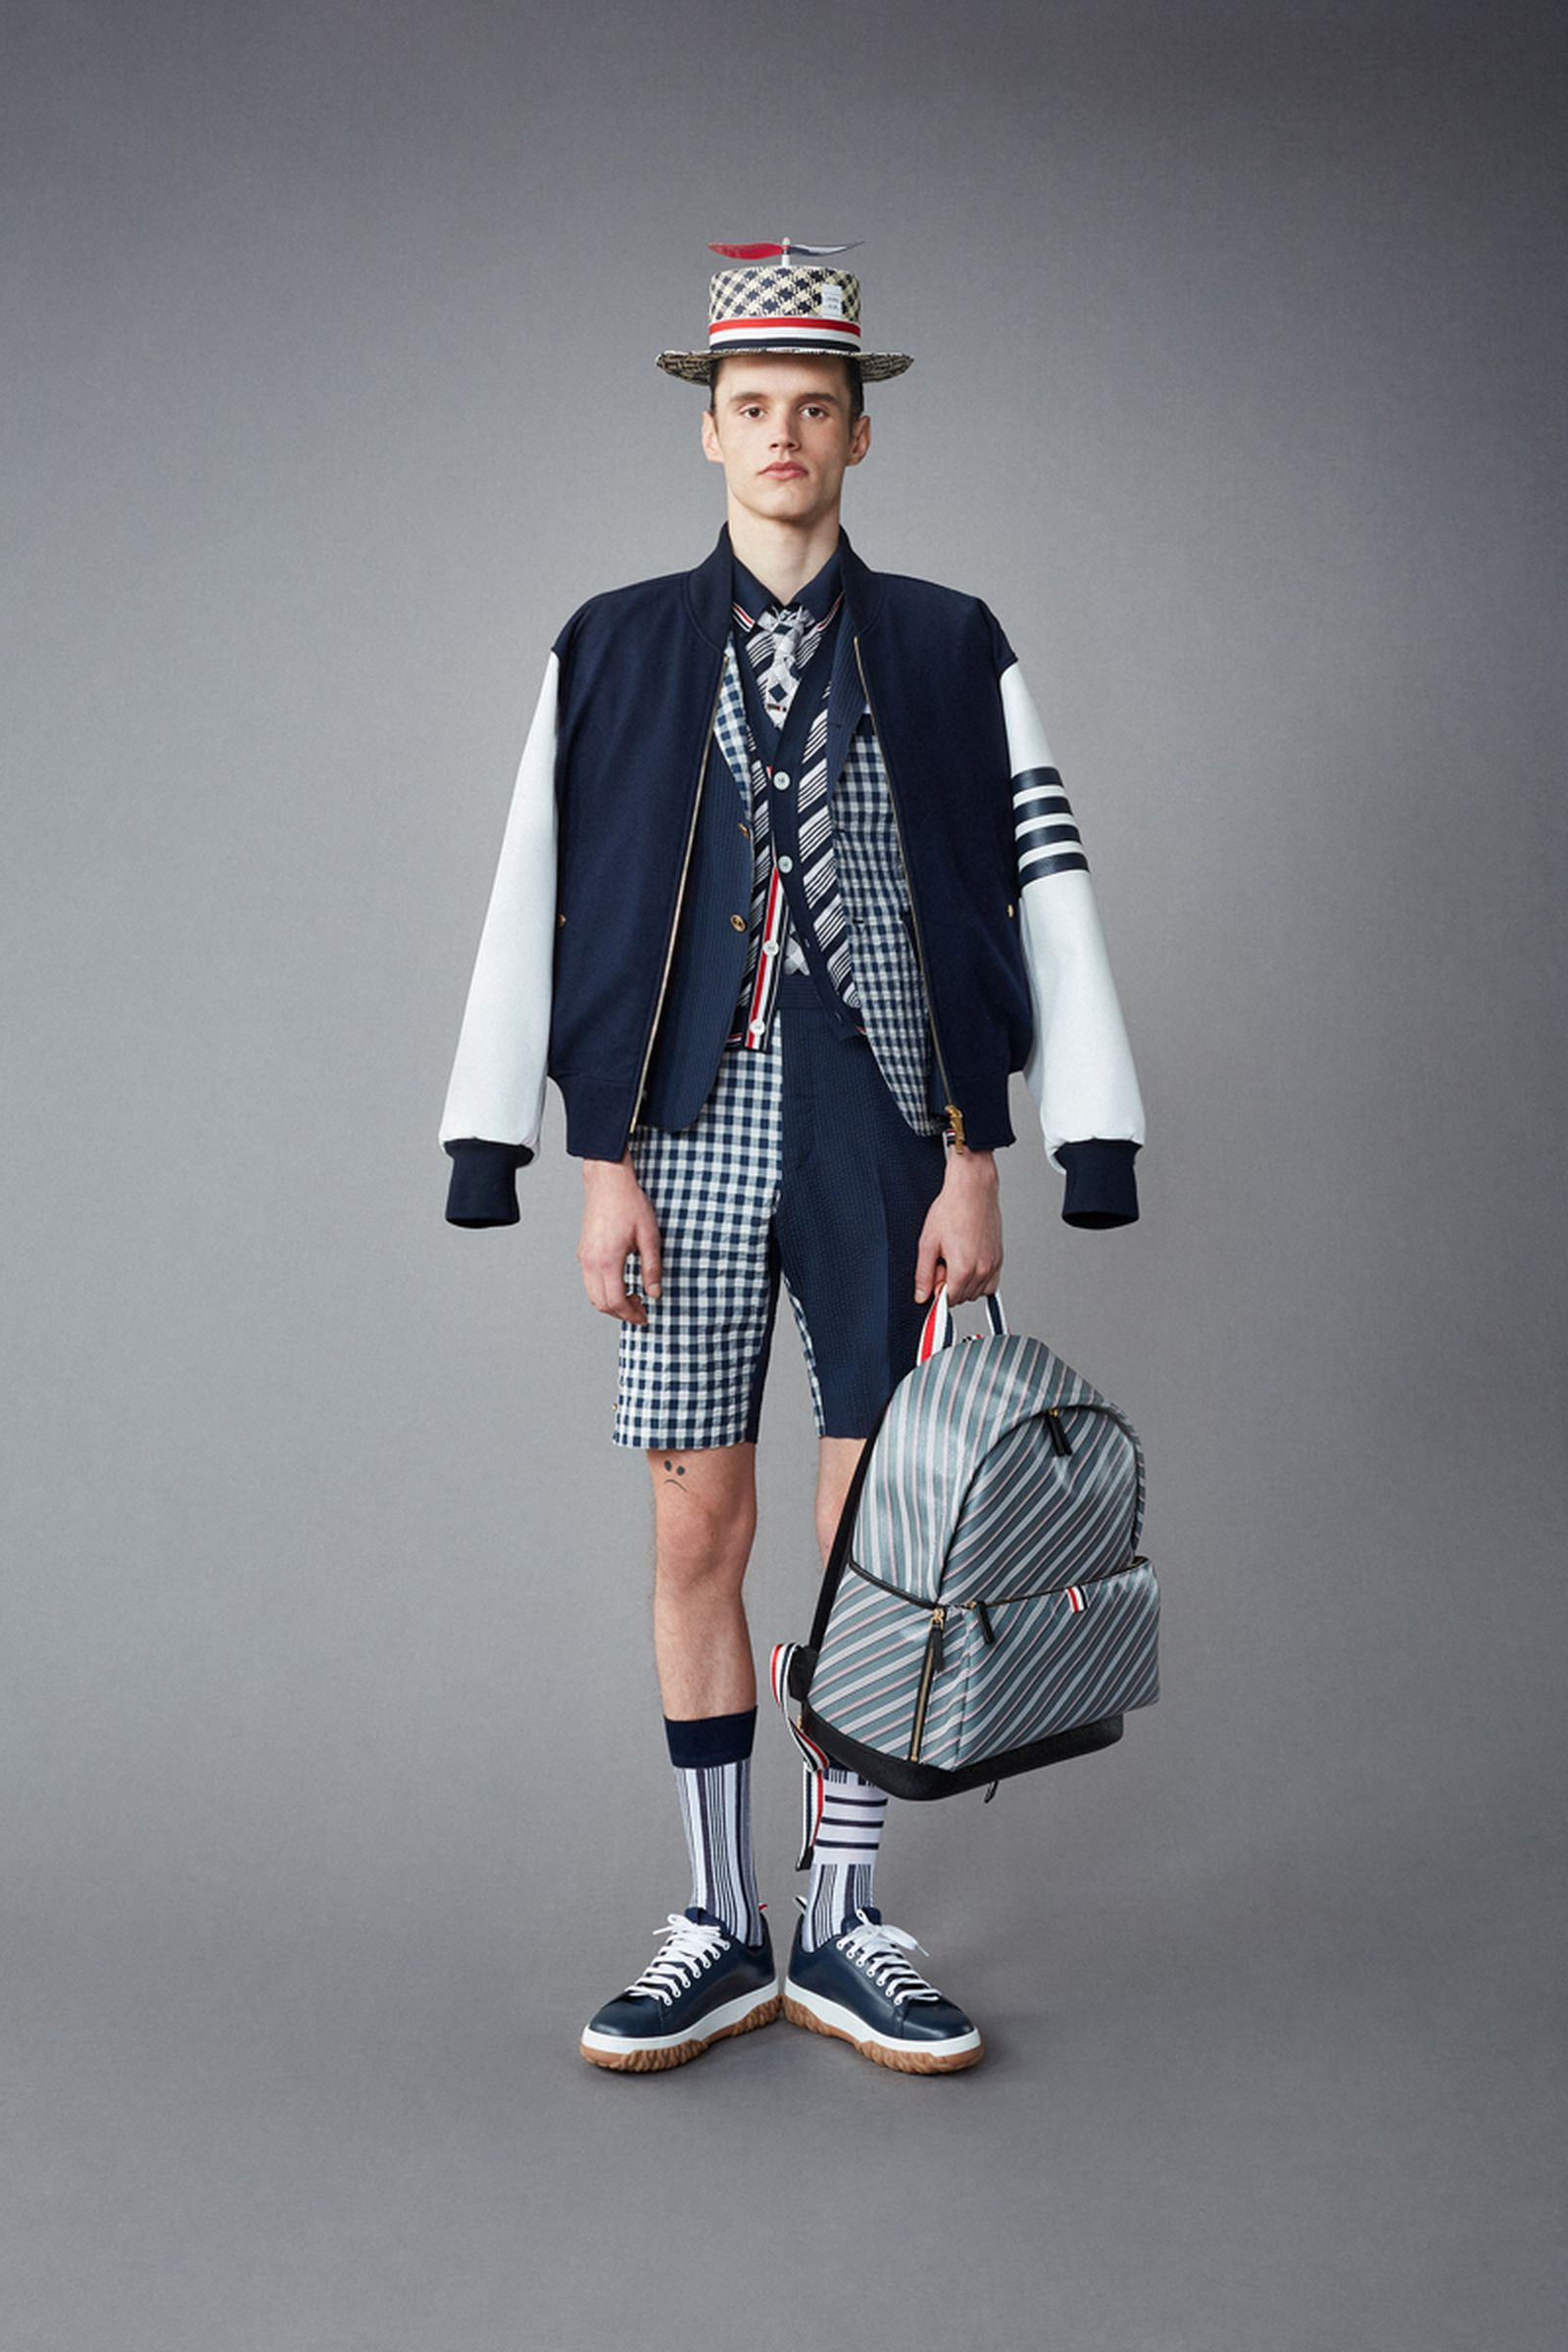 thom-browne-resort-2022-collection- (34)